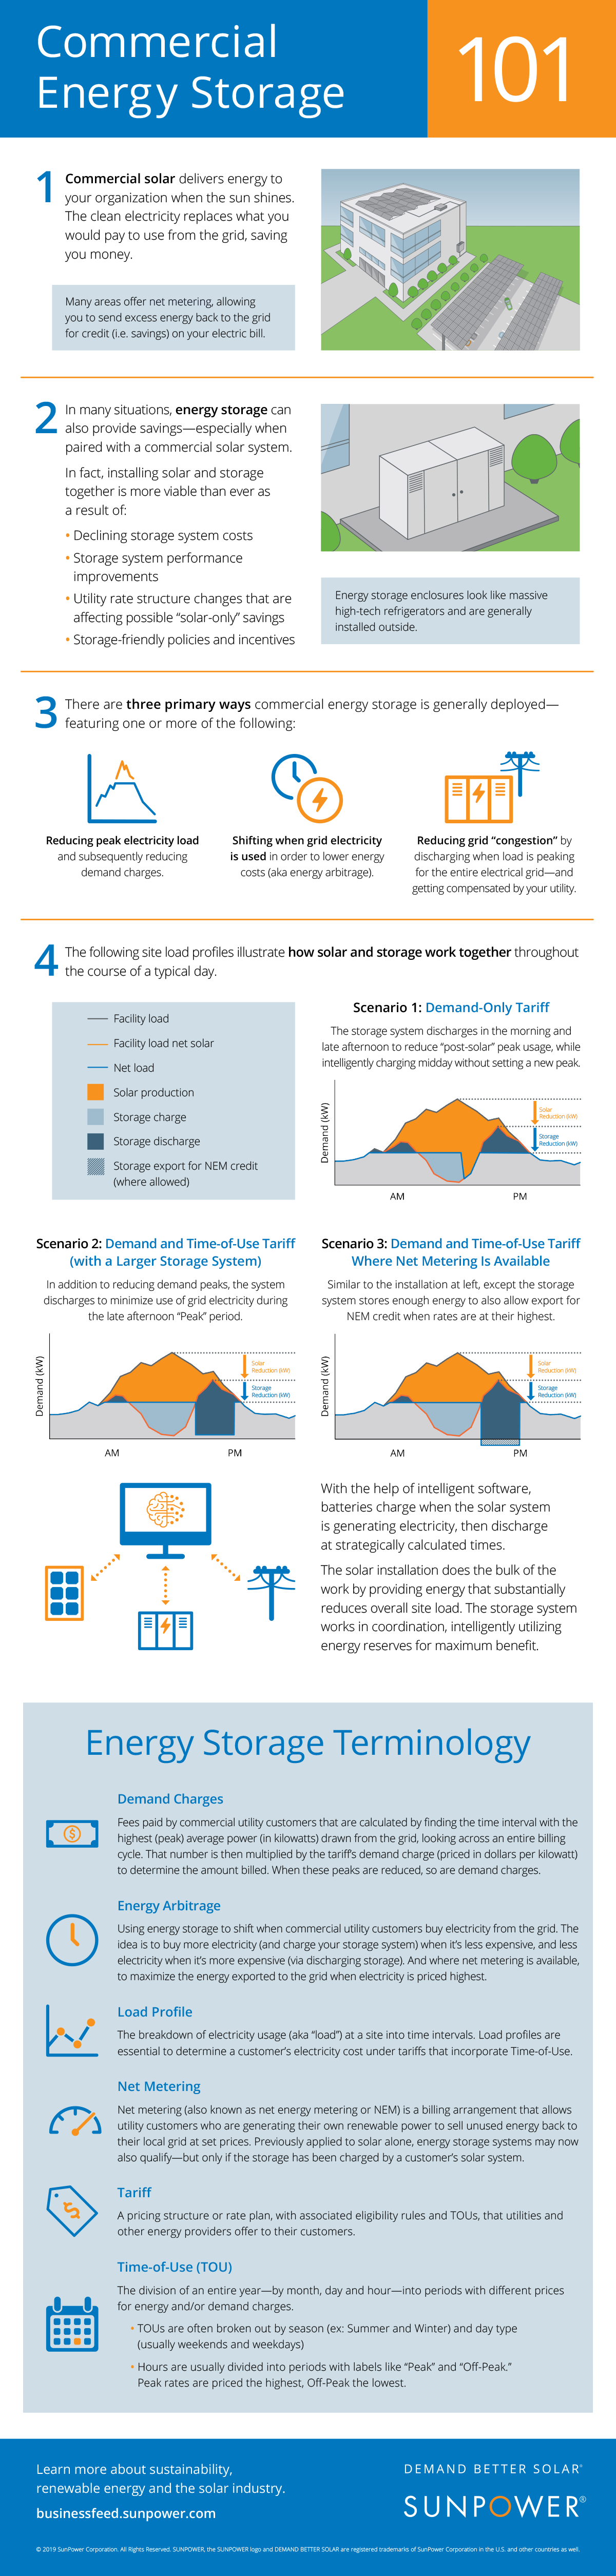 commercial energy storage infographic